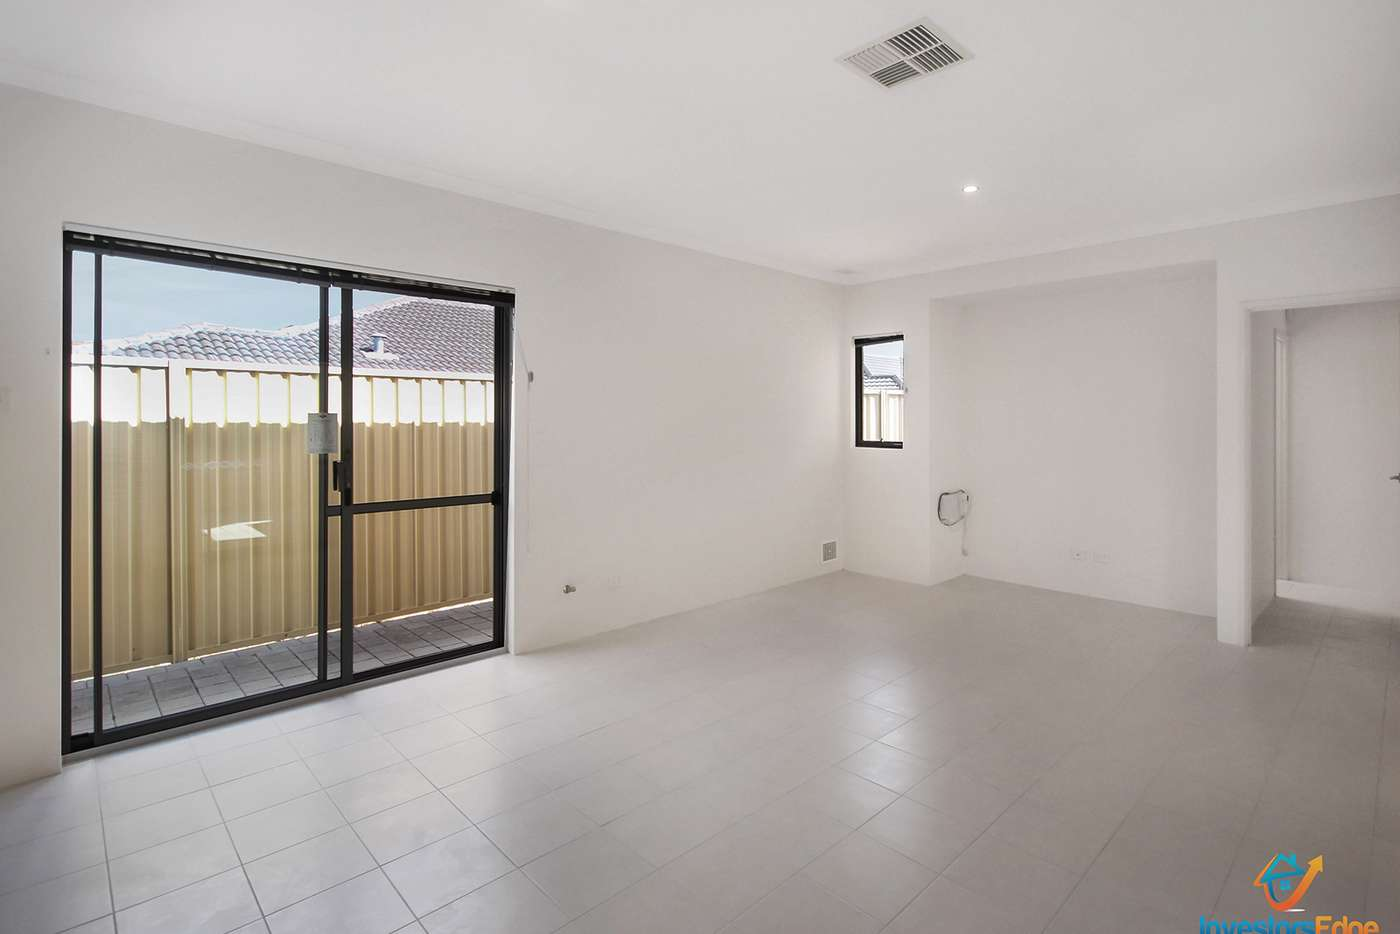 Sixth view of Homely house listing, 2/10 Hillcrest Road, Kewdale WA 6105